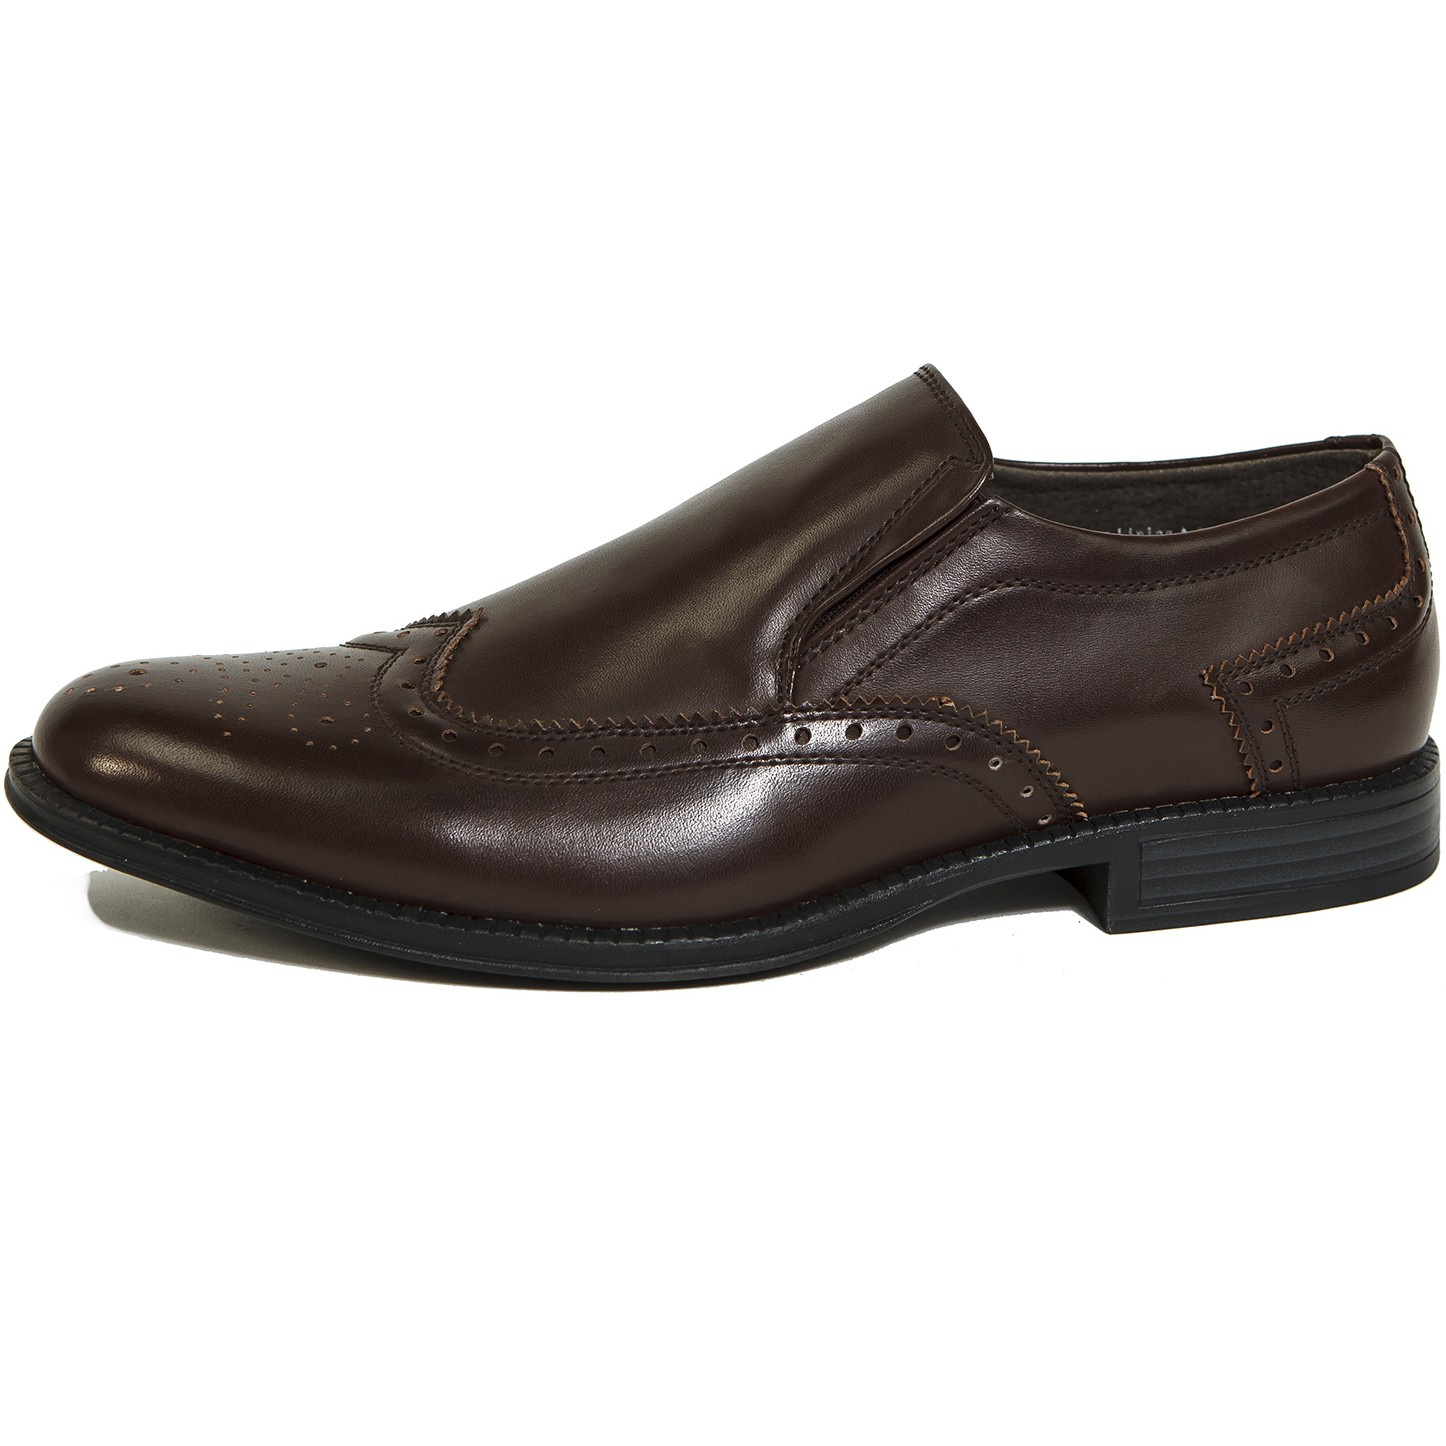 Alpine-Swiss-Basel-Mens-Wing-Tip-Dress-Shoes-Brogue-Medallion-Slip-On-Loafers thumbnail 19